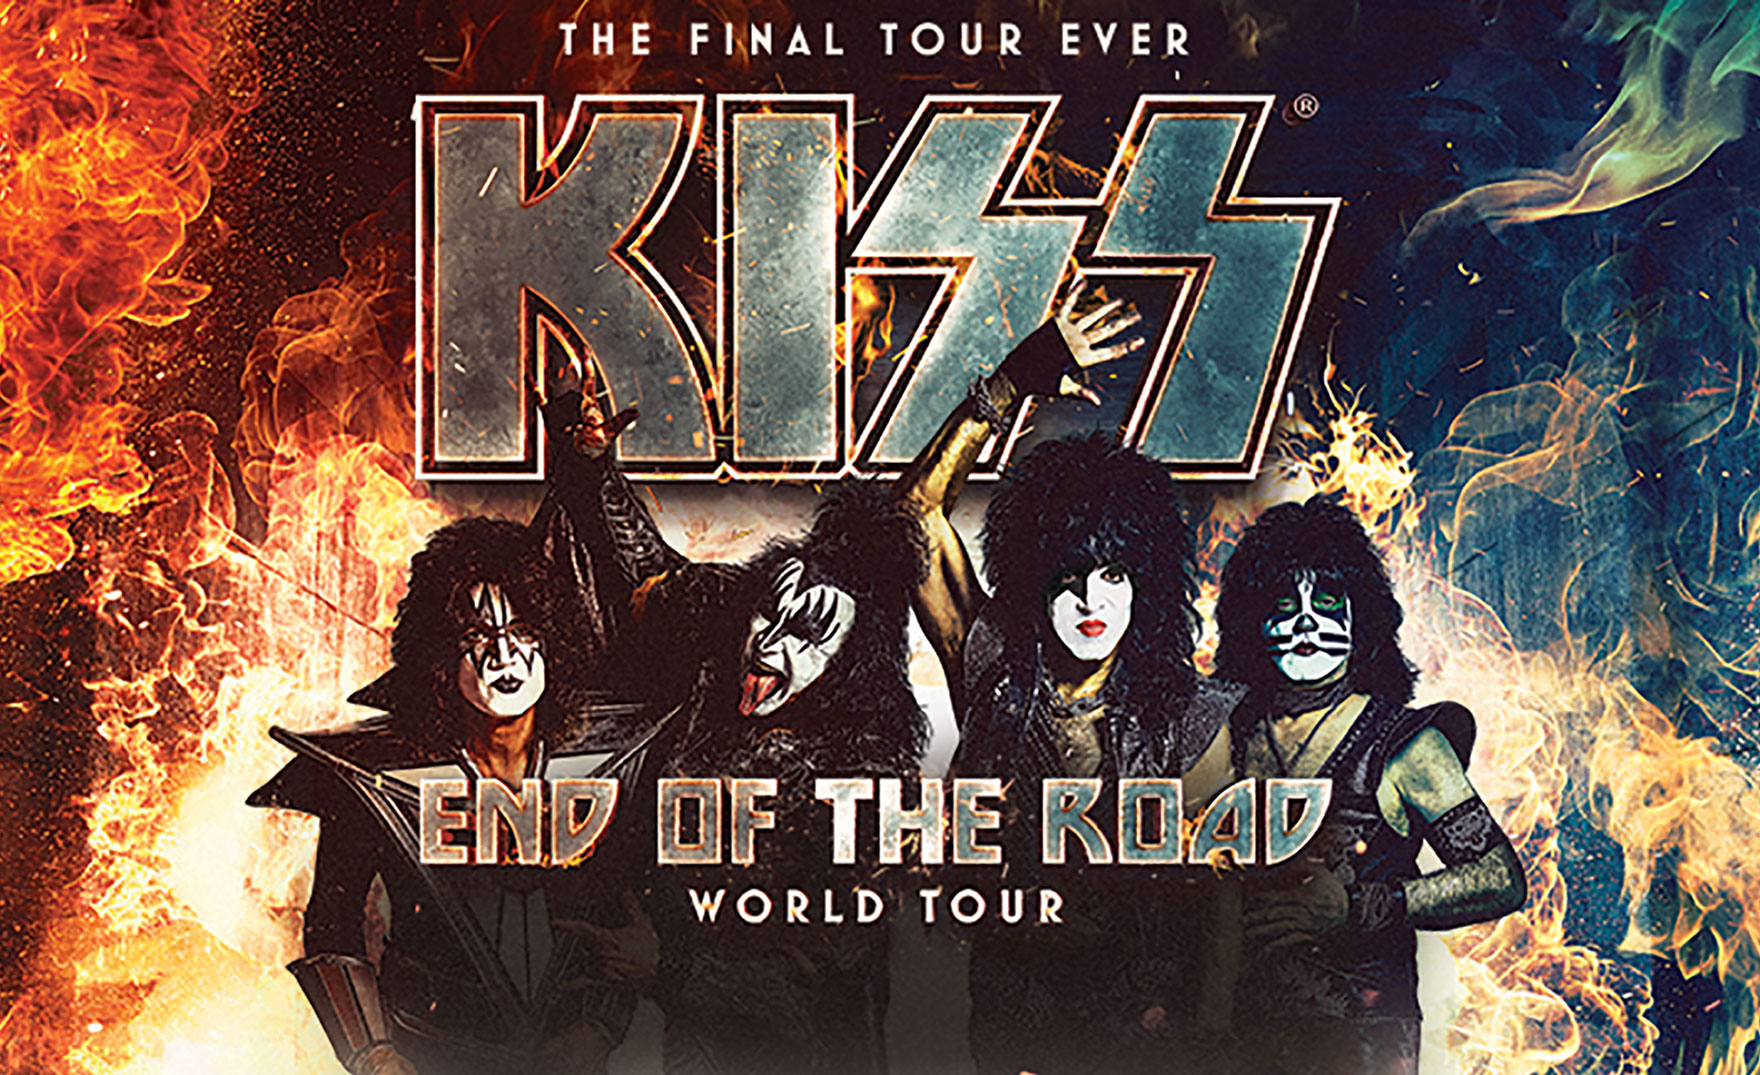 Kiss deliver the greatest show on Earth with 'The Final Tour Ever'